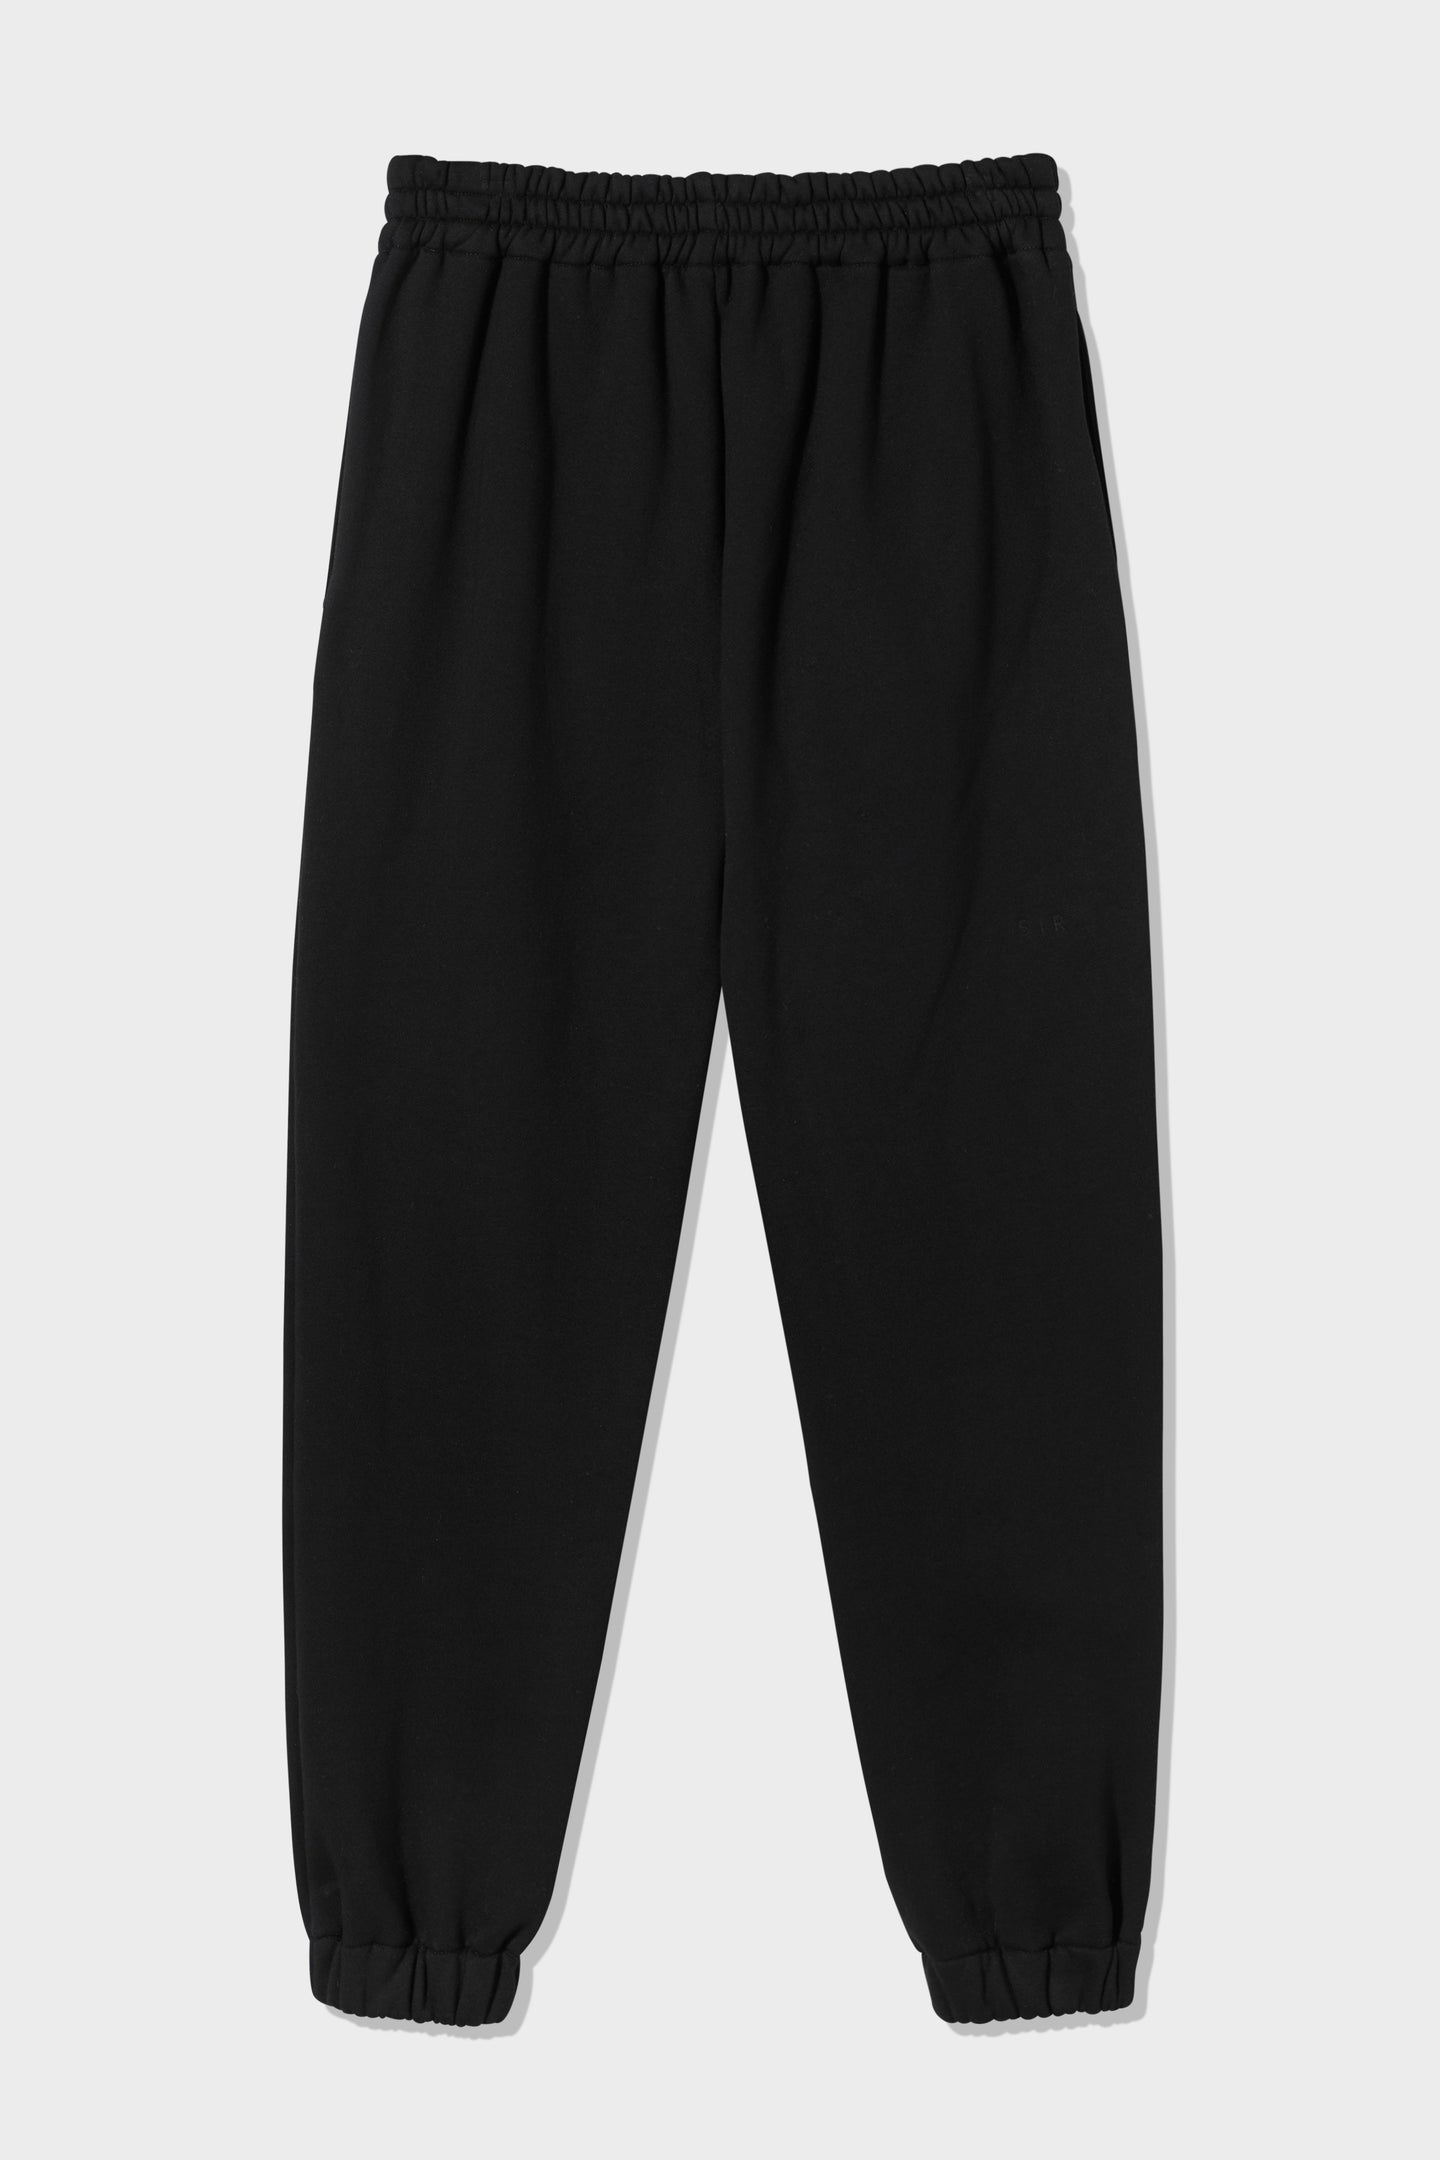 SIR the label MENS TRACK PANT BLACK